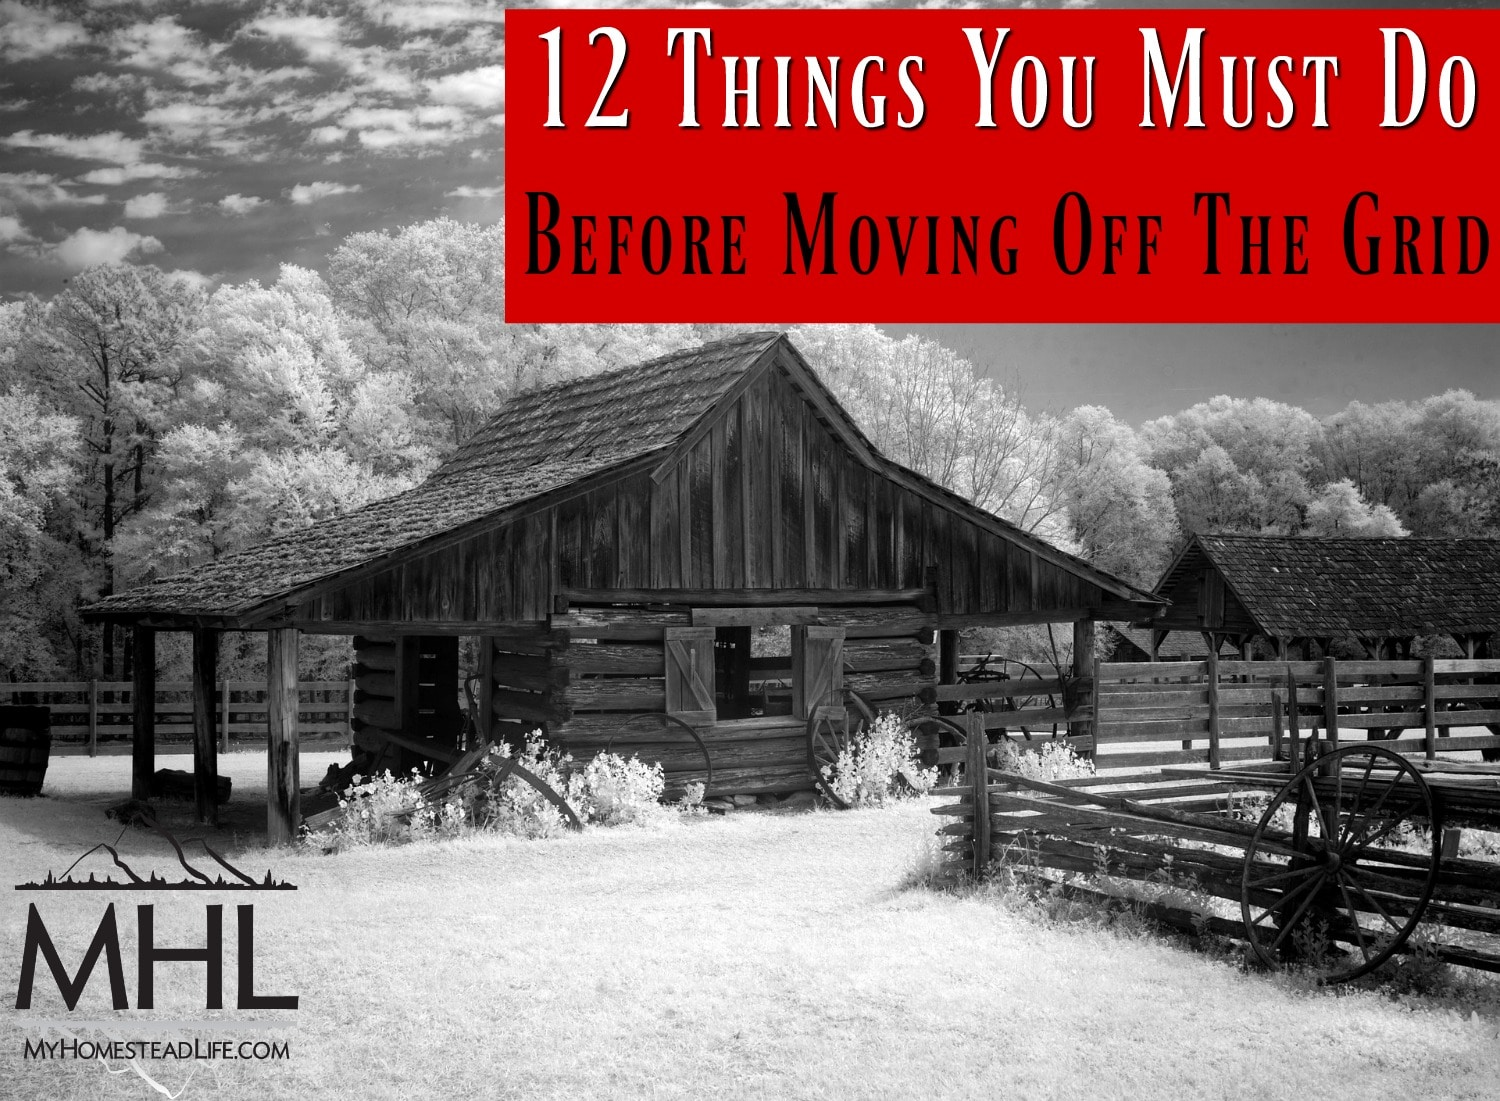 12 Things You Must Do Before Moving Off The Grid